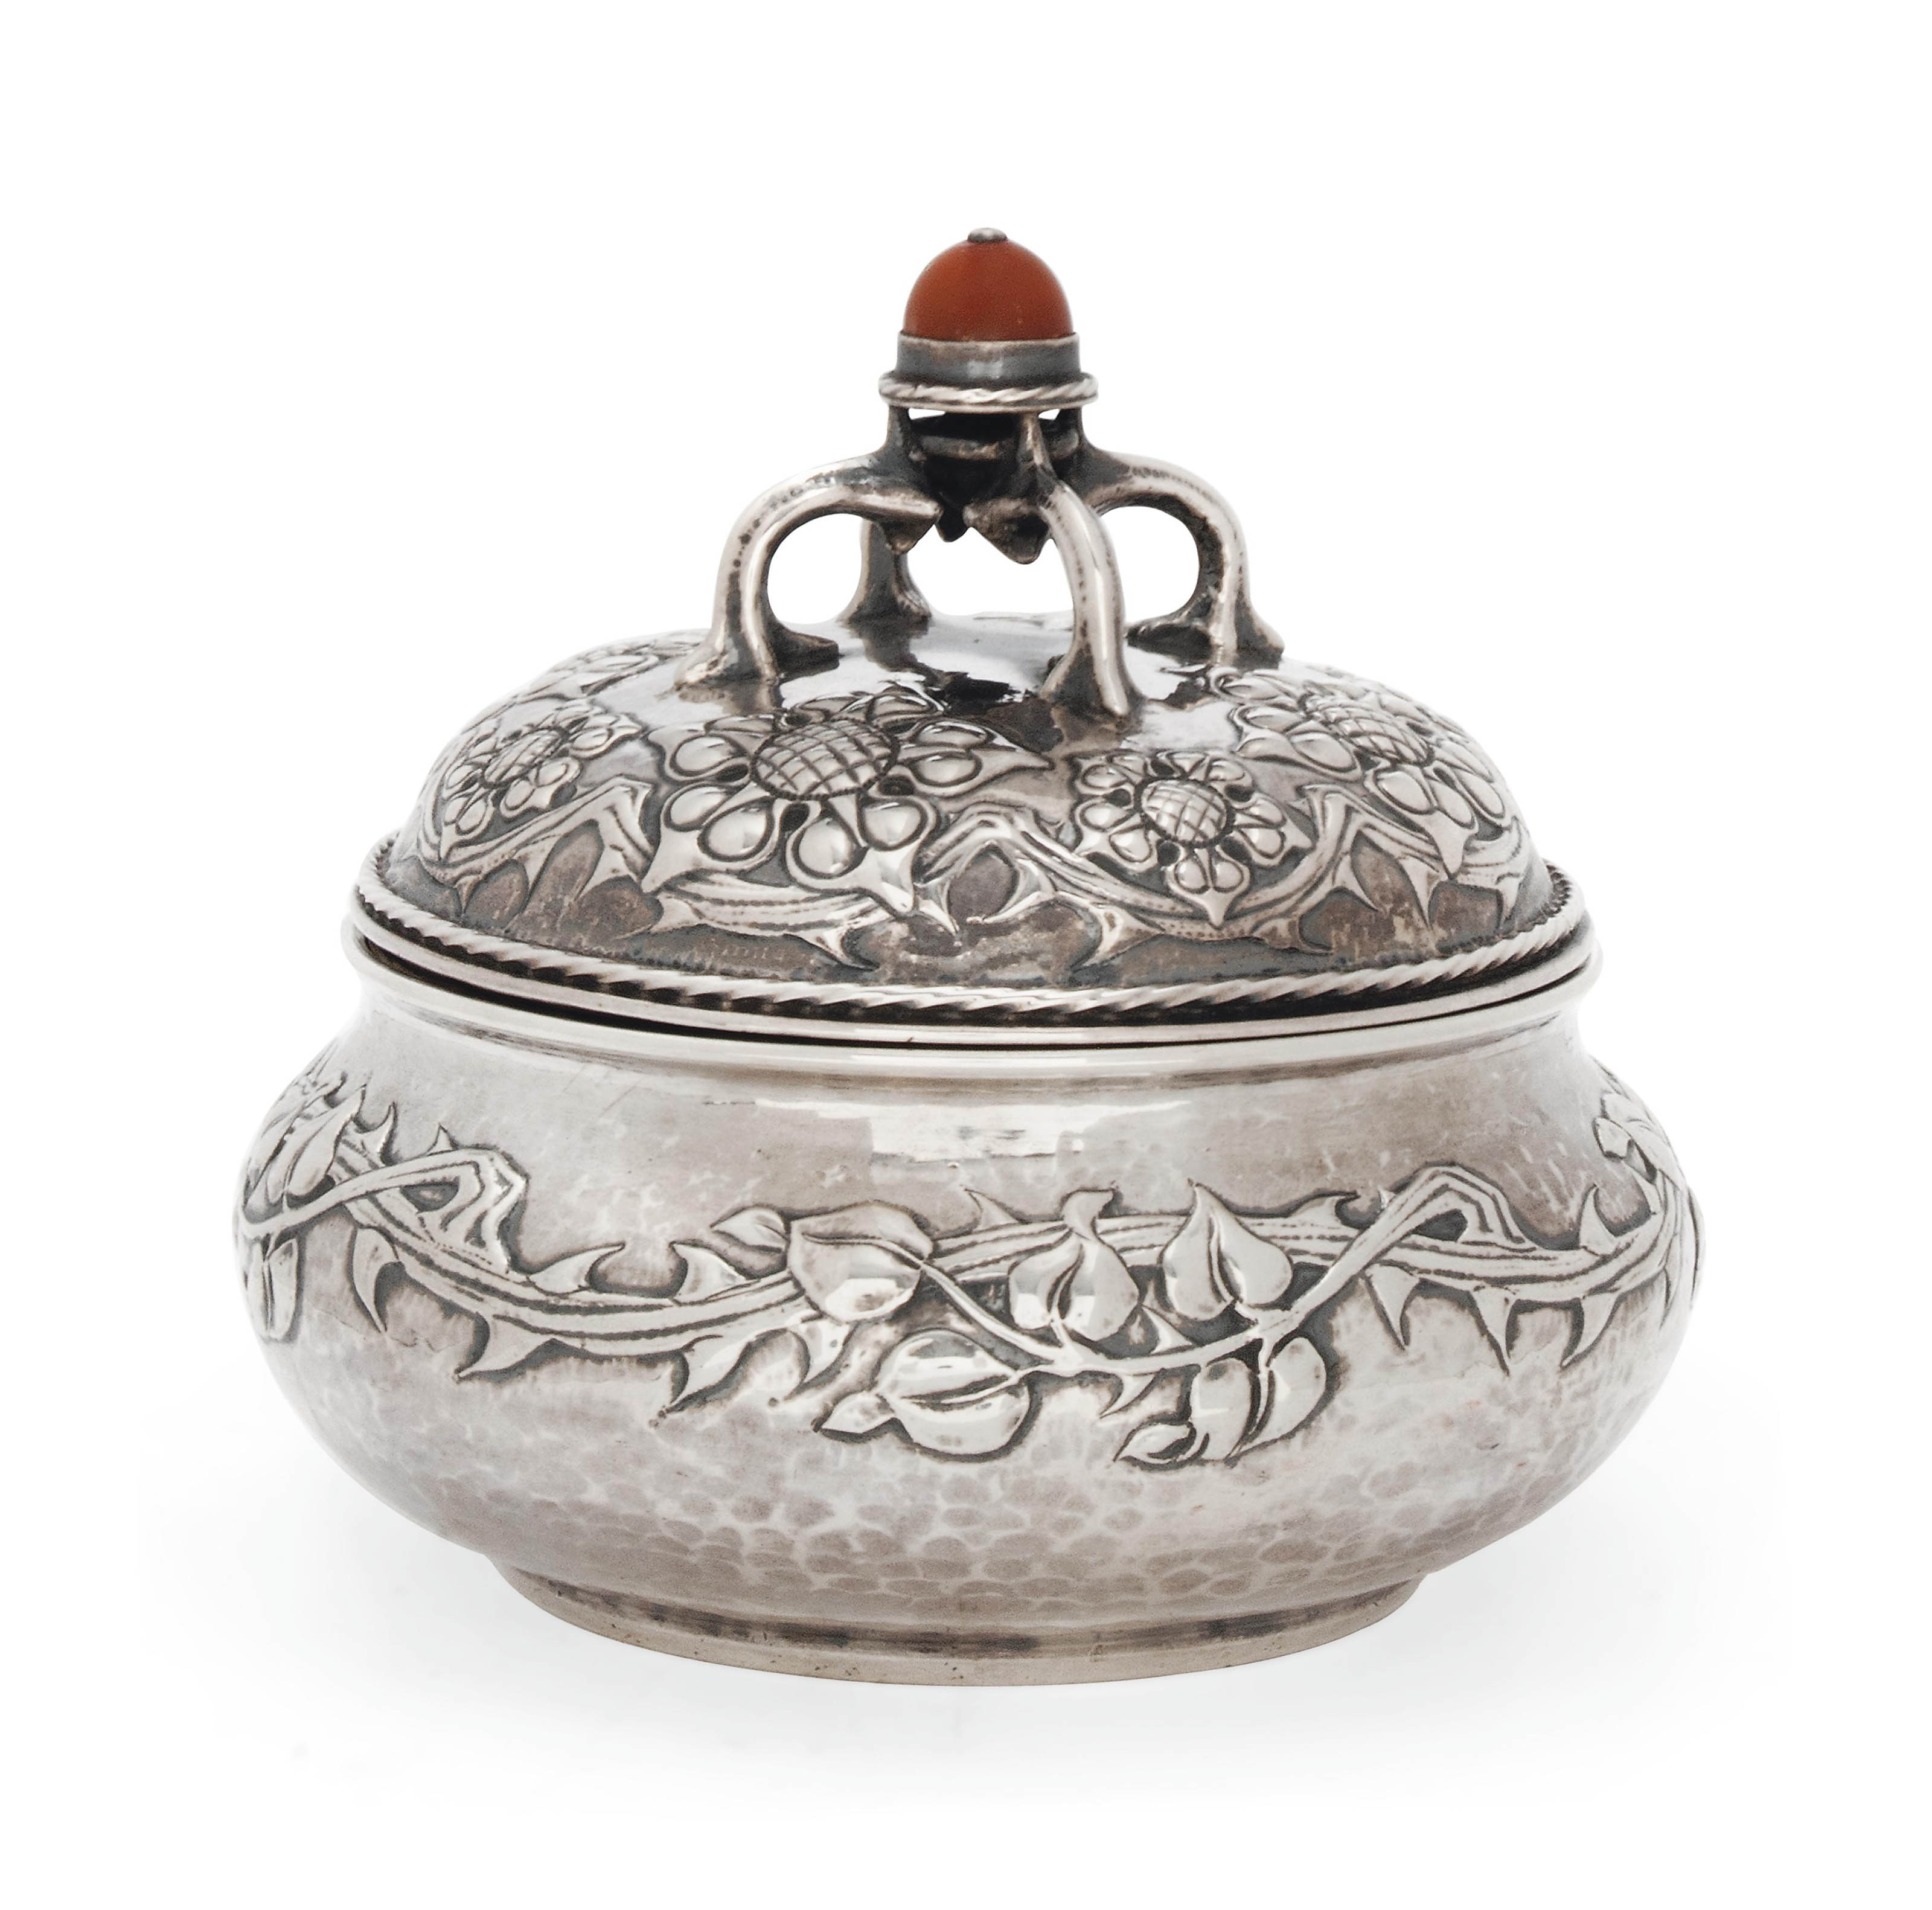 AN RAMSDEN (1873-1939) & CARR (1872-1940) SILVER POWDER BOWL AND COVER